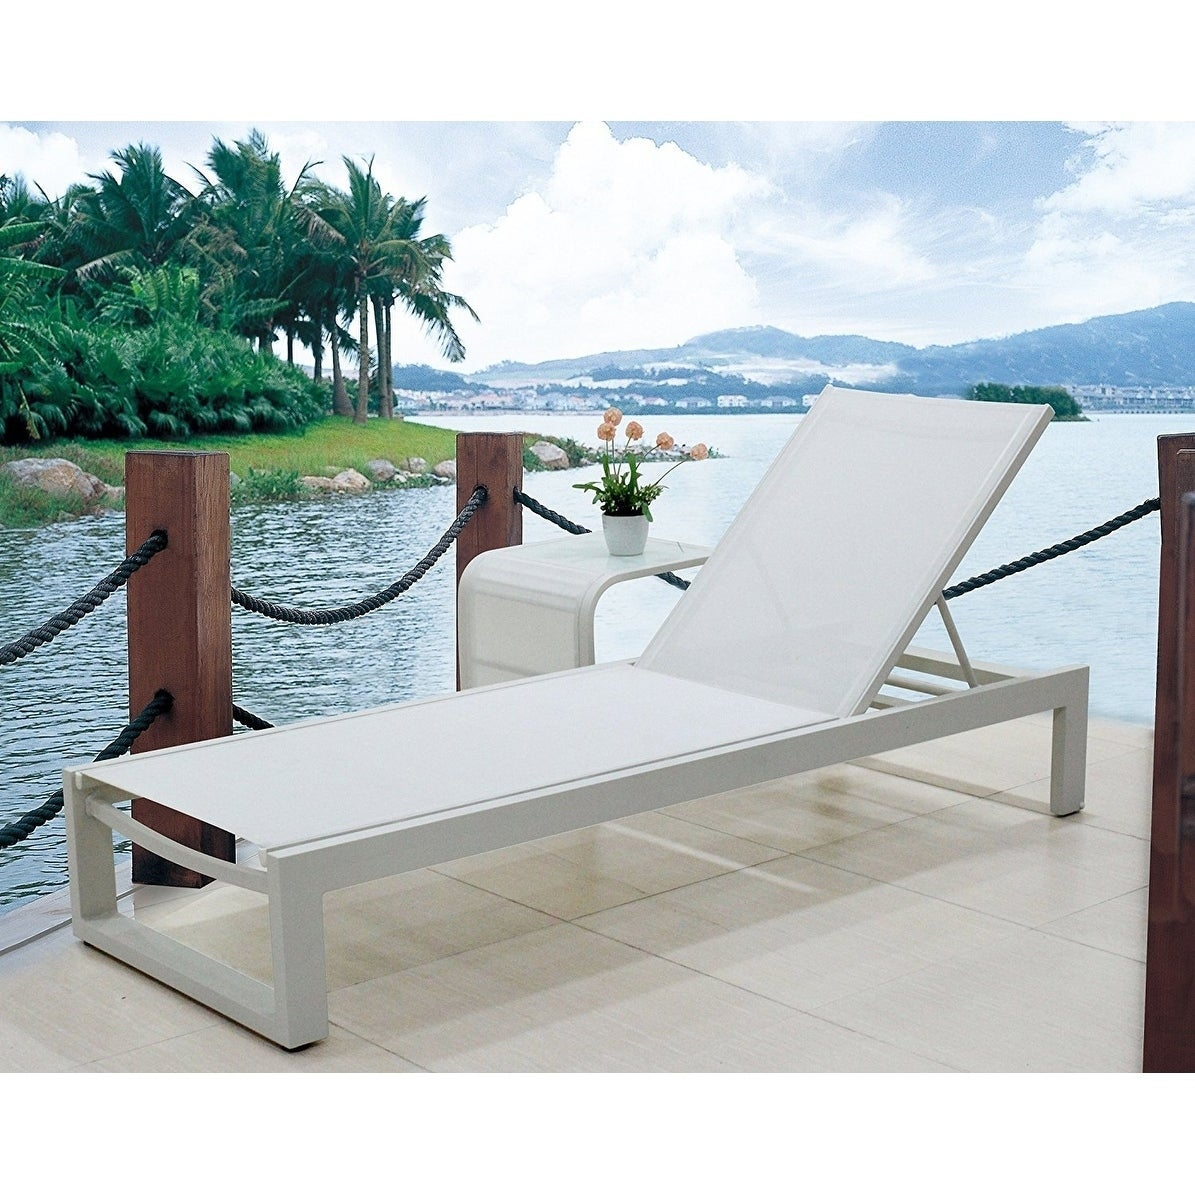 Infinity White All-weather Modern Adjustable Outdoor Patio Chaise Lounge  Furniture (Pack of 2)